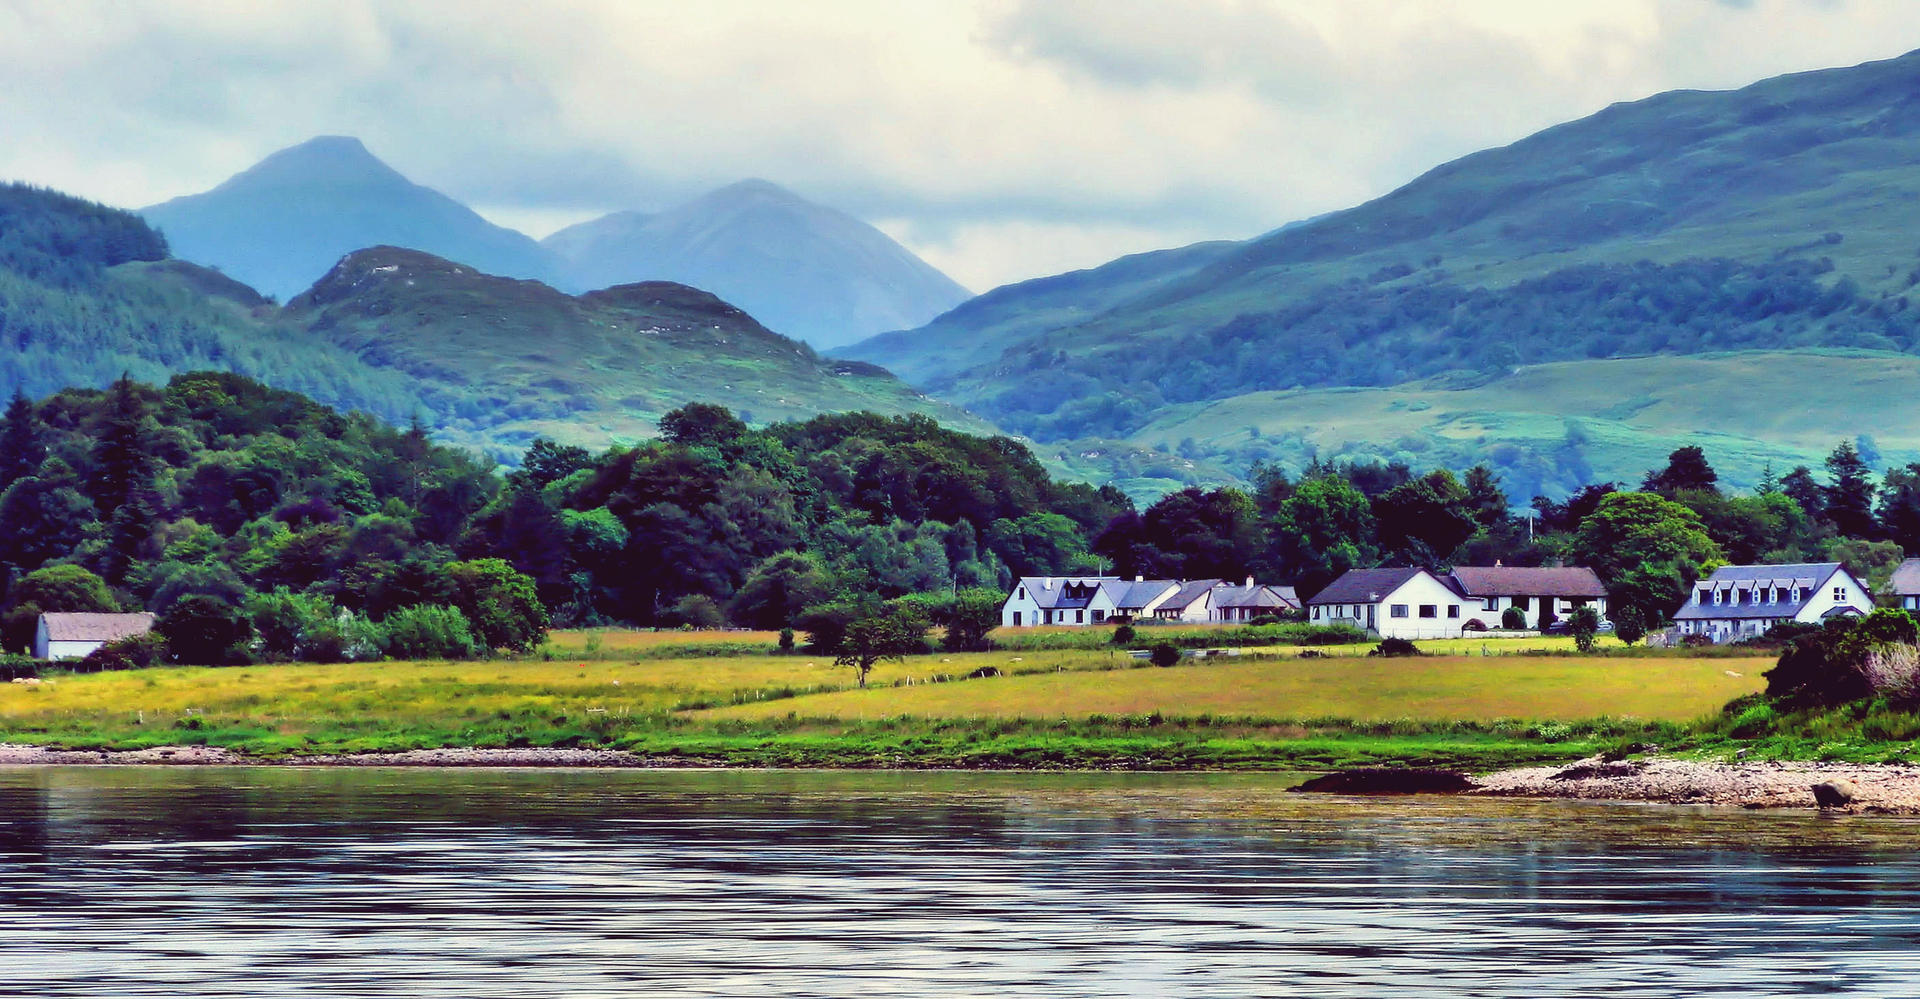 Scenery near Oban scotland with loch beach and mountains green trees and clouds